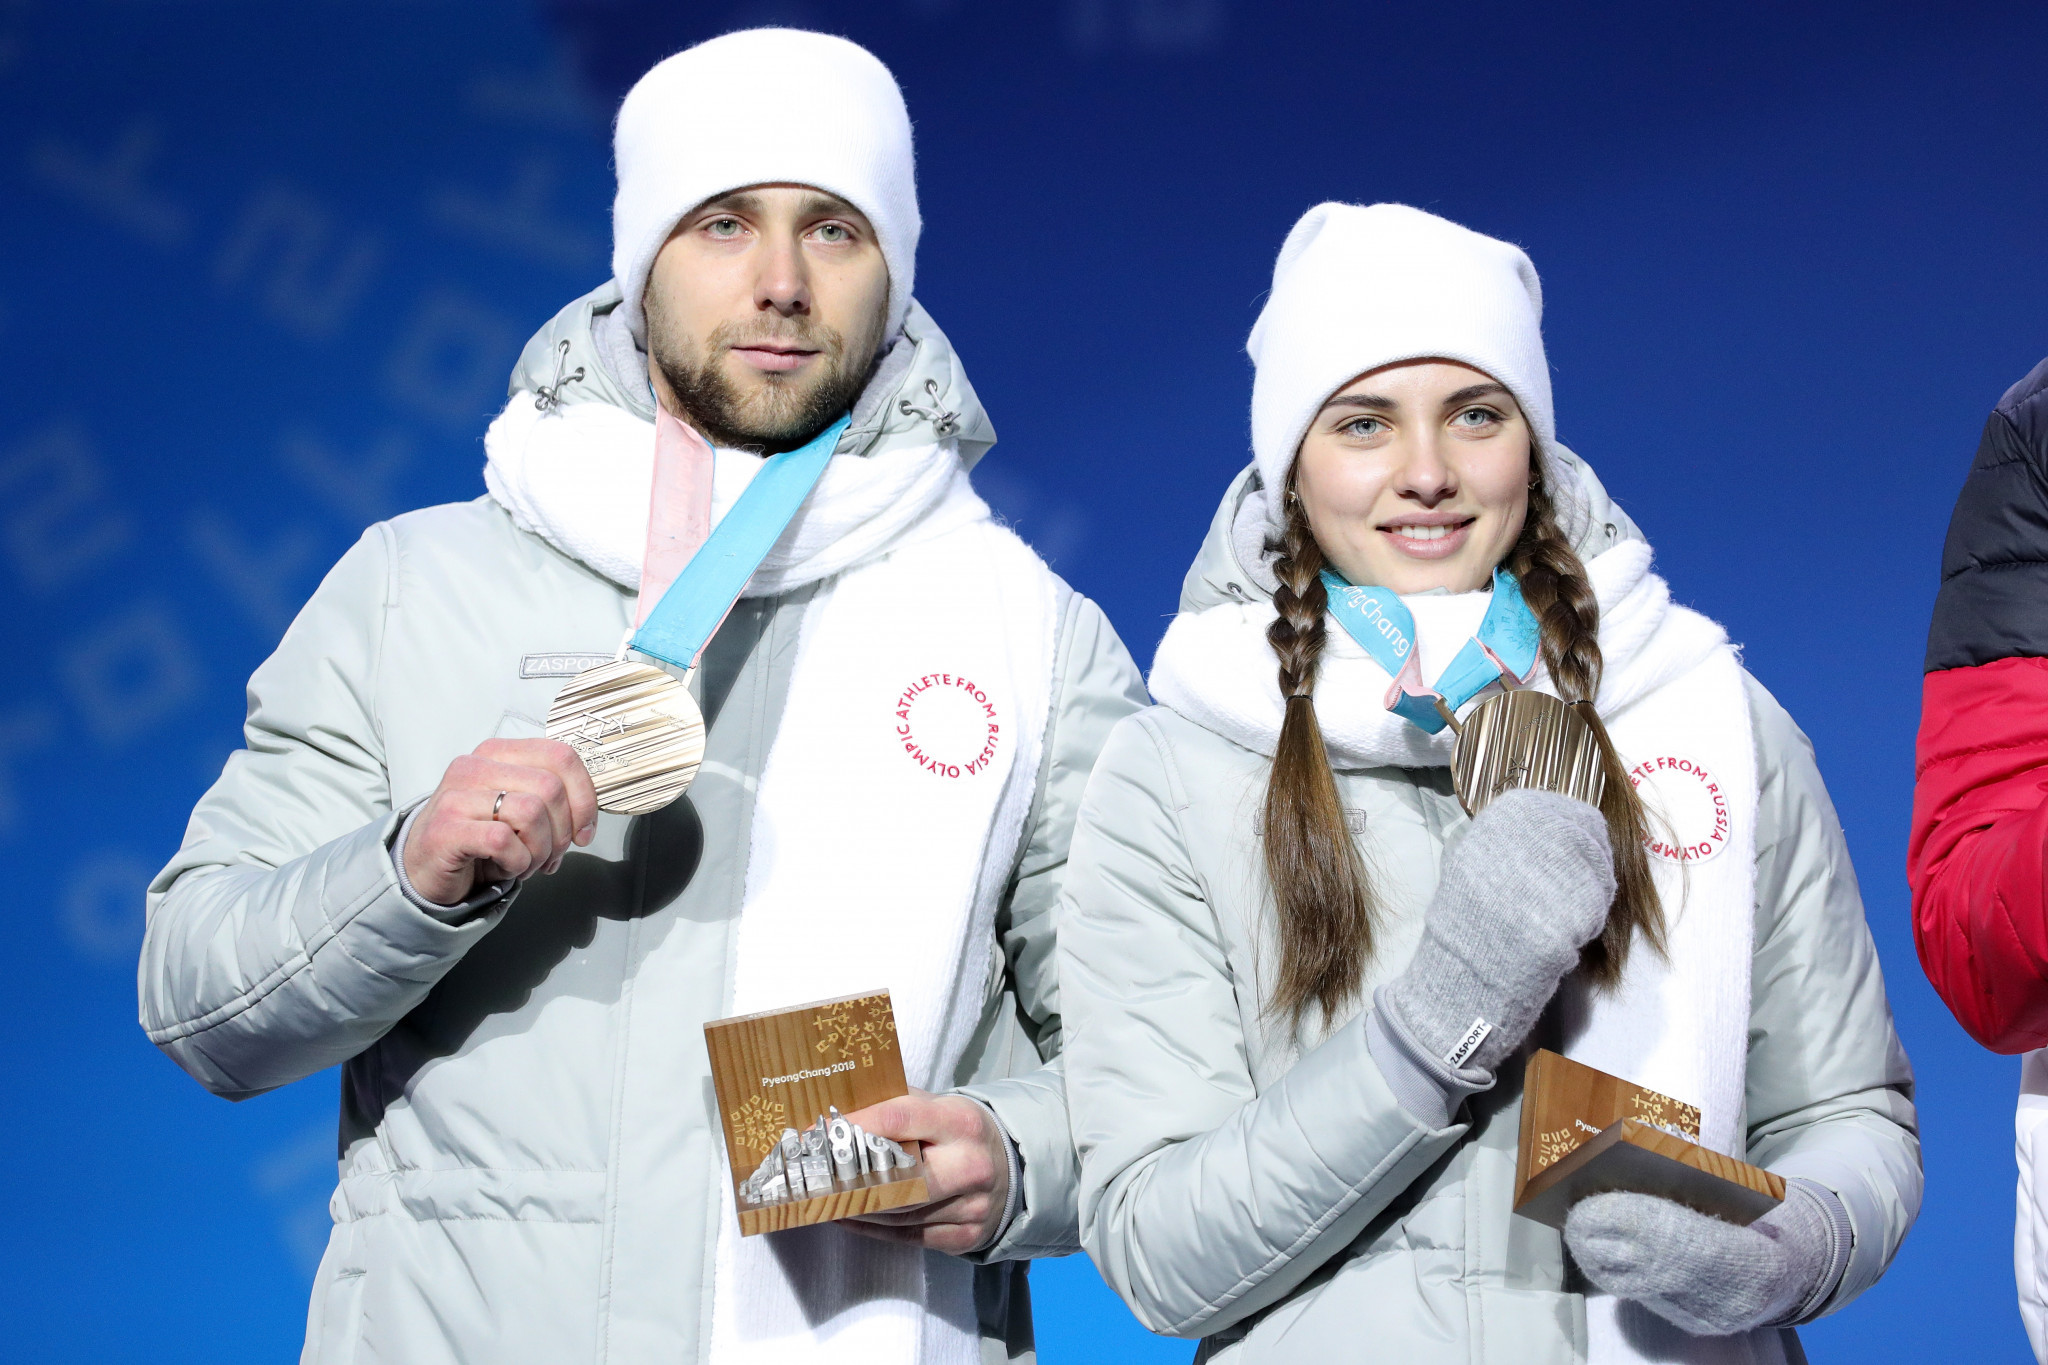 Aleksandr Krushelnitckii and his wife Anastasia Bryzgalova were stripped of their bronze medal following his positive test ©Getty Images